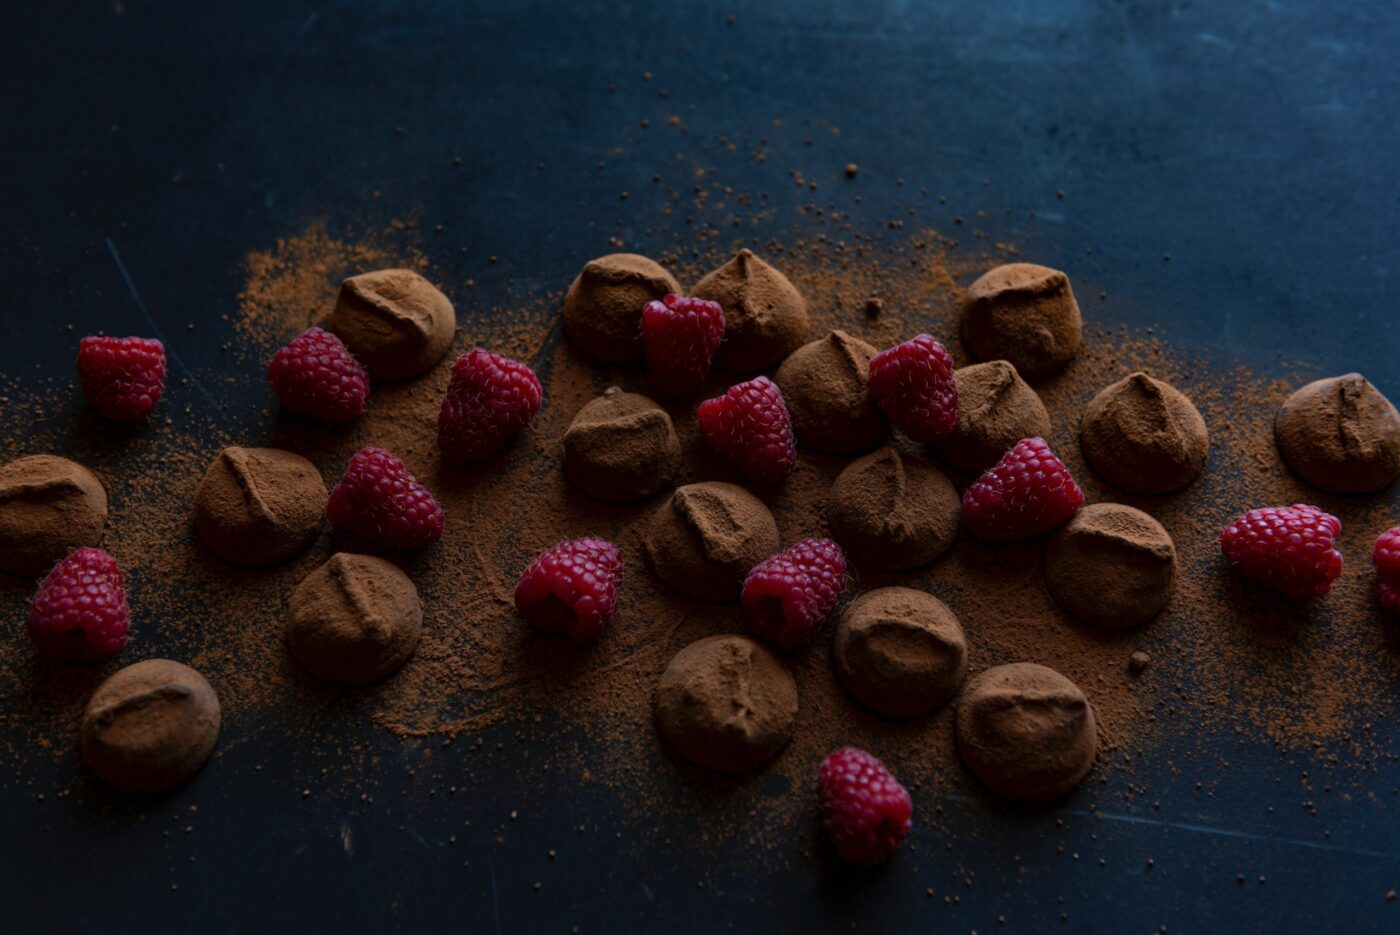 Explore the world of fruit and chocolate